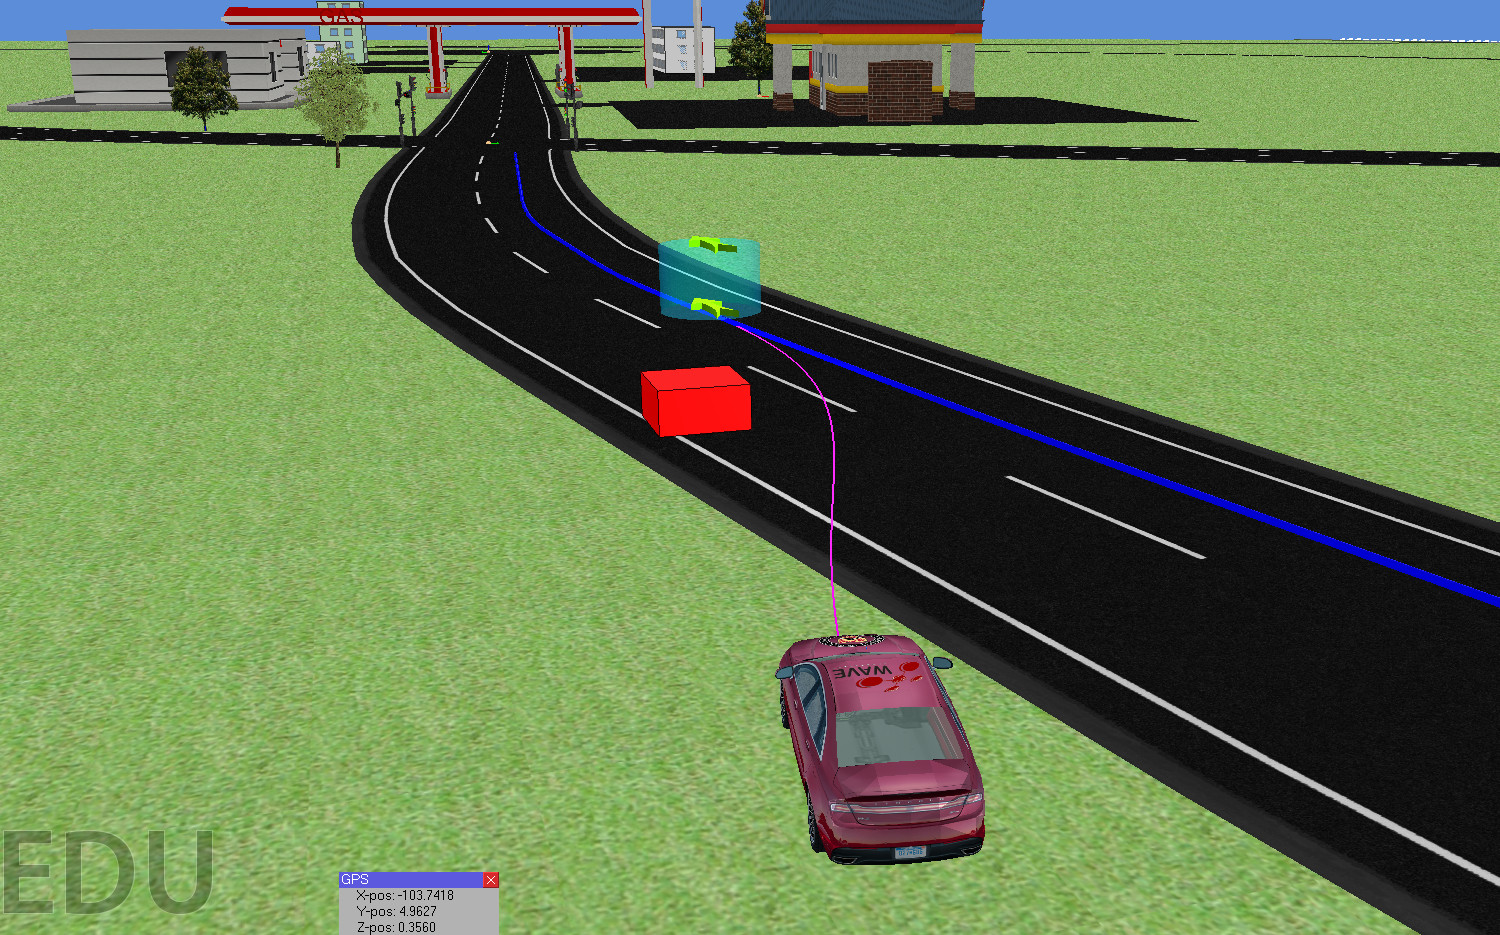 Motion Planning for Autonomous Driving